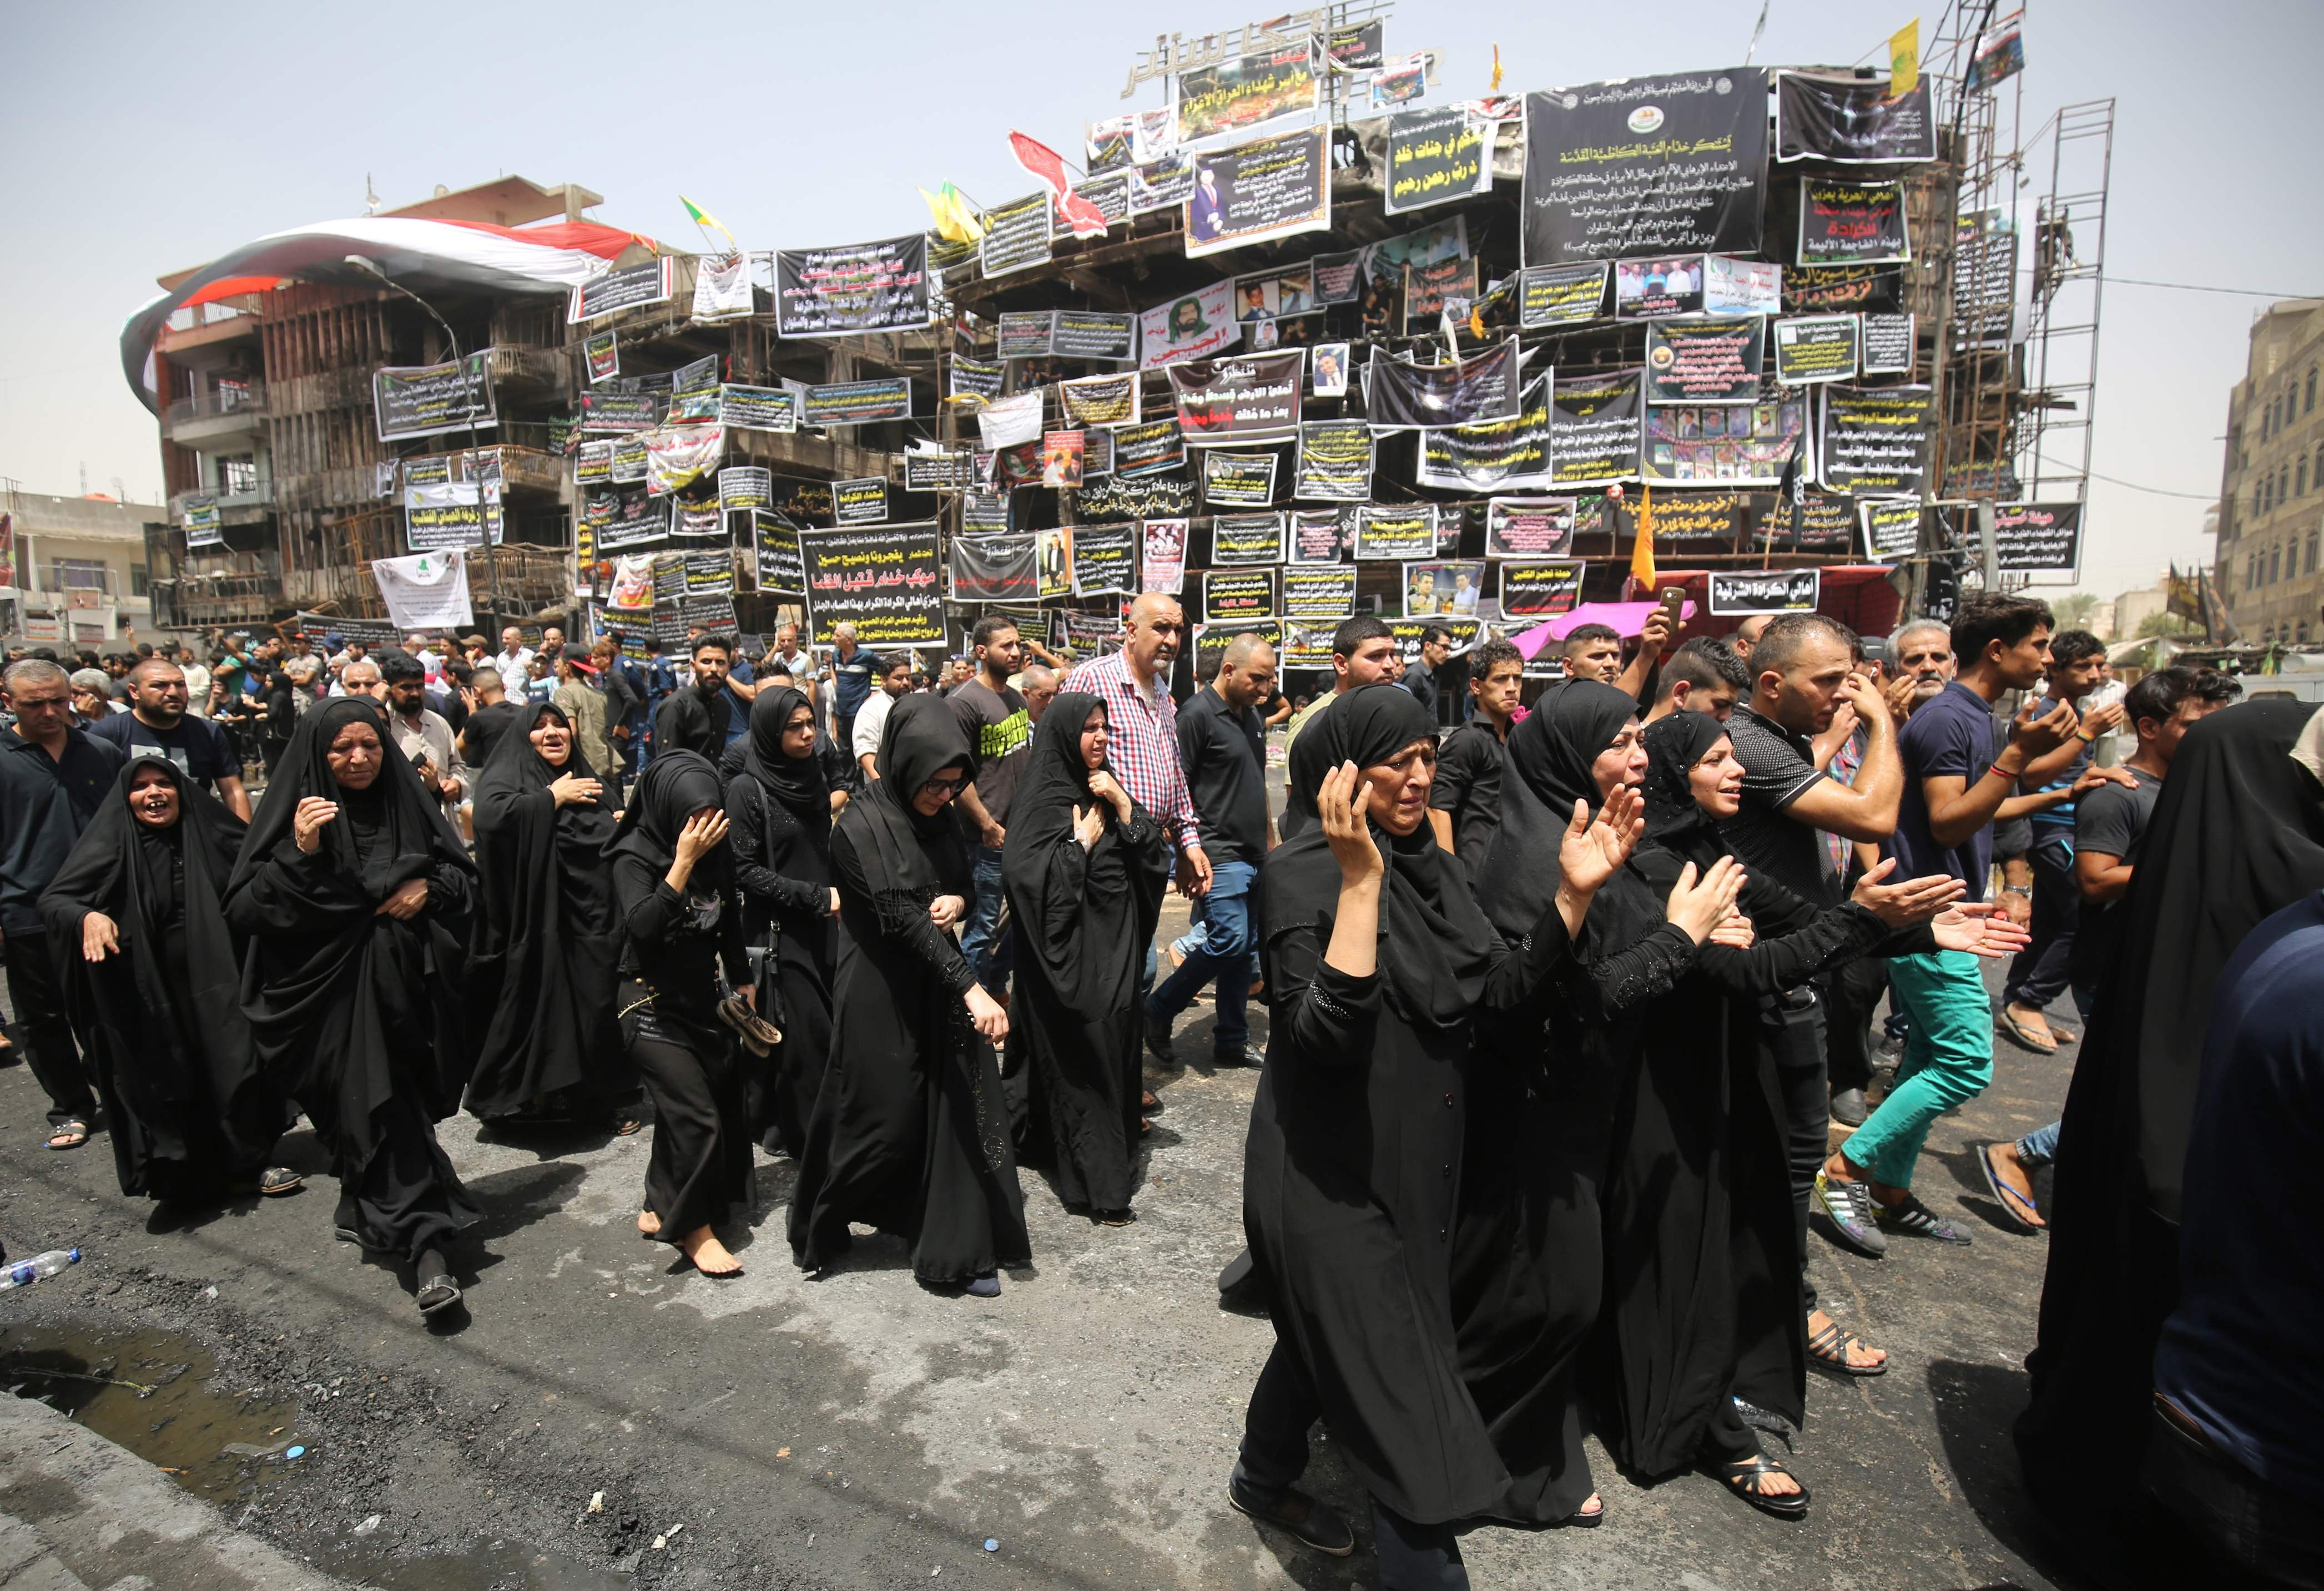 Mourners walk during the funeral of an Iraqi man who was killed in a suicide bombing attack in Baghdad, on July 6, 2016.